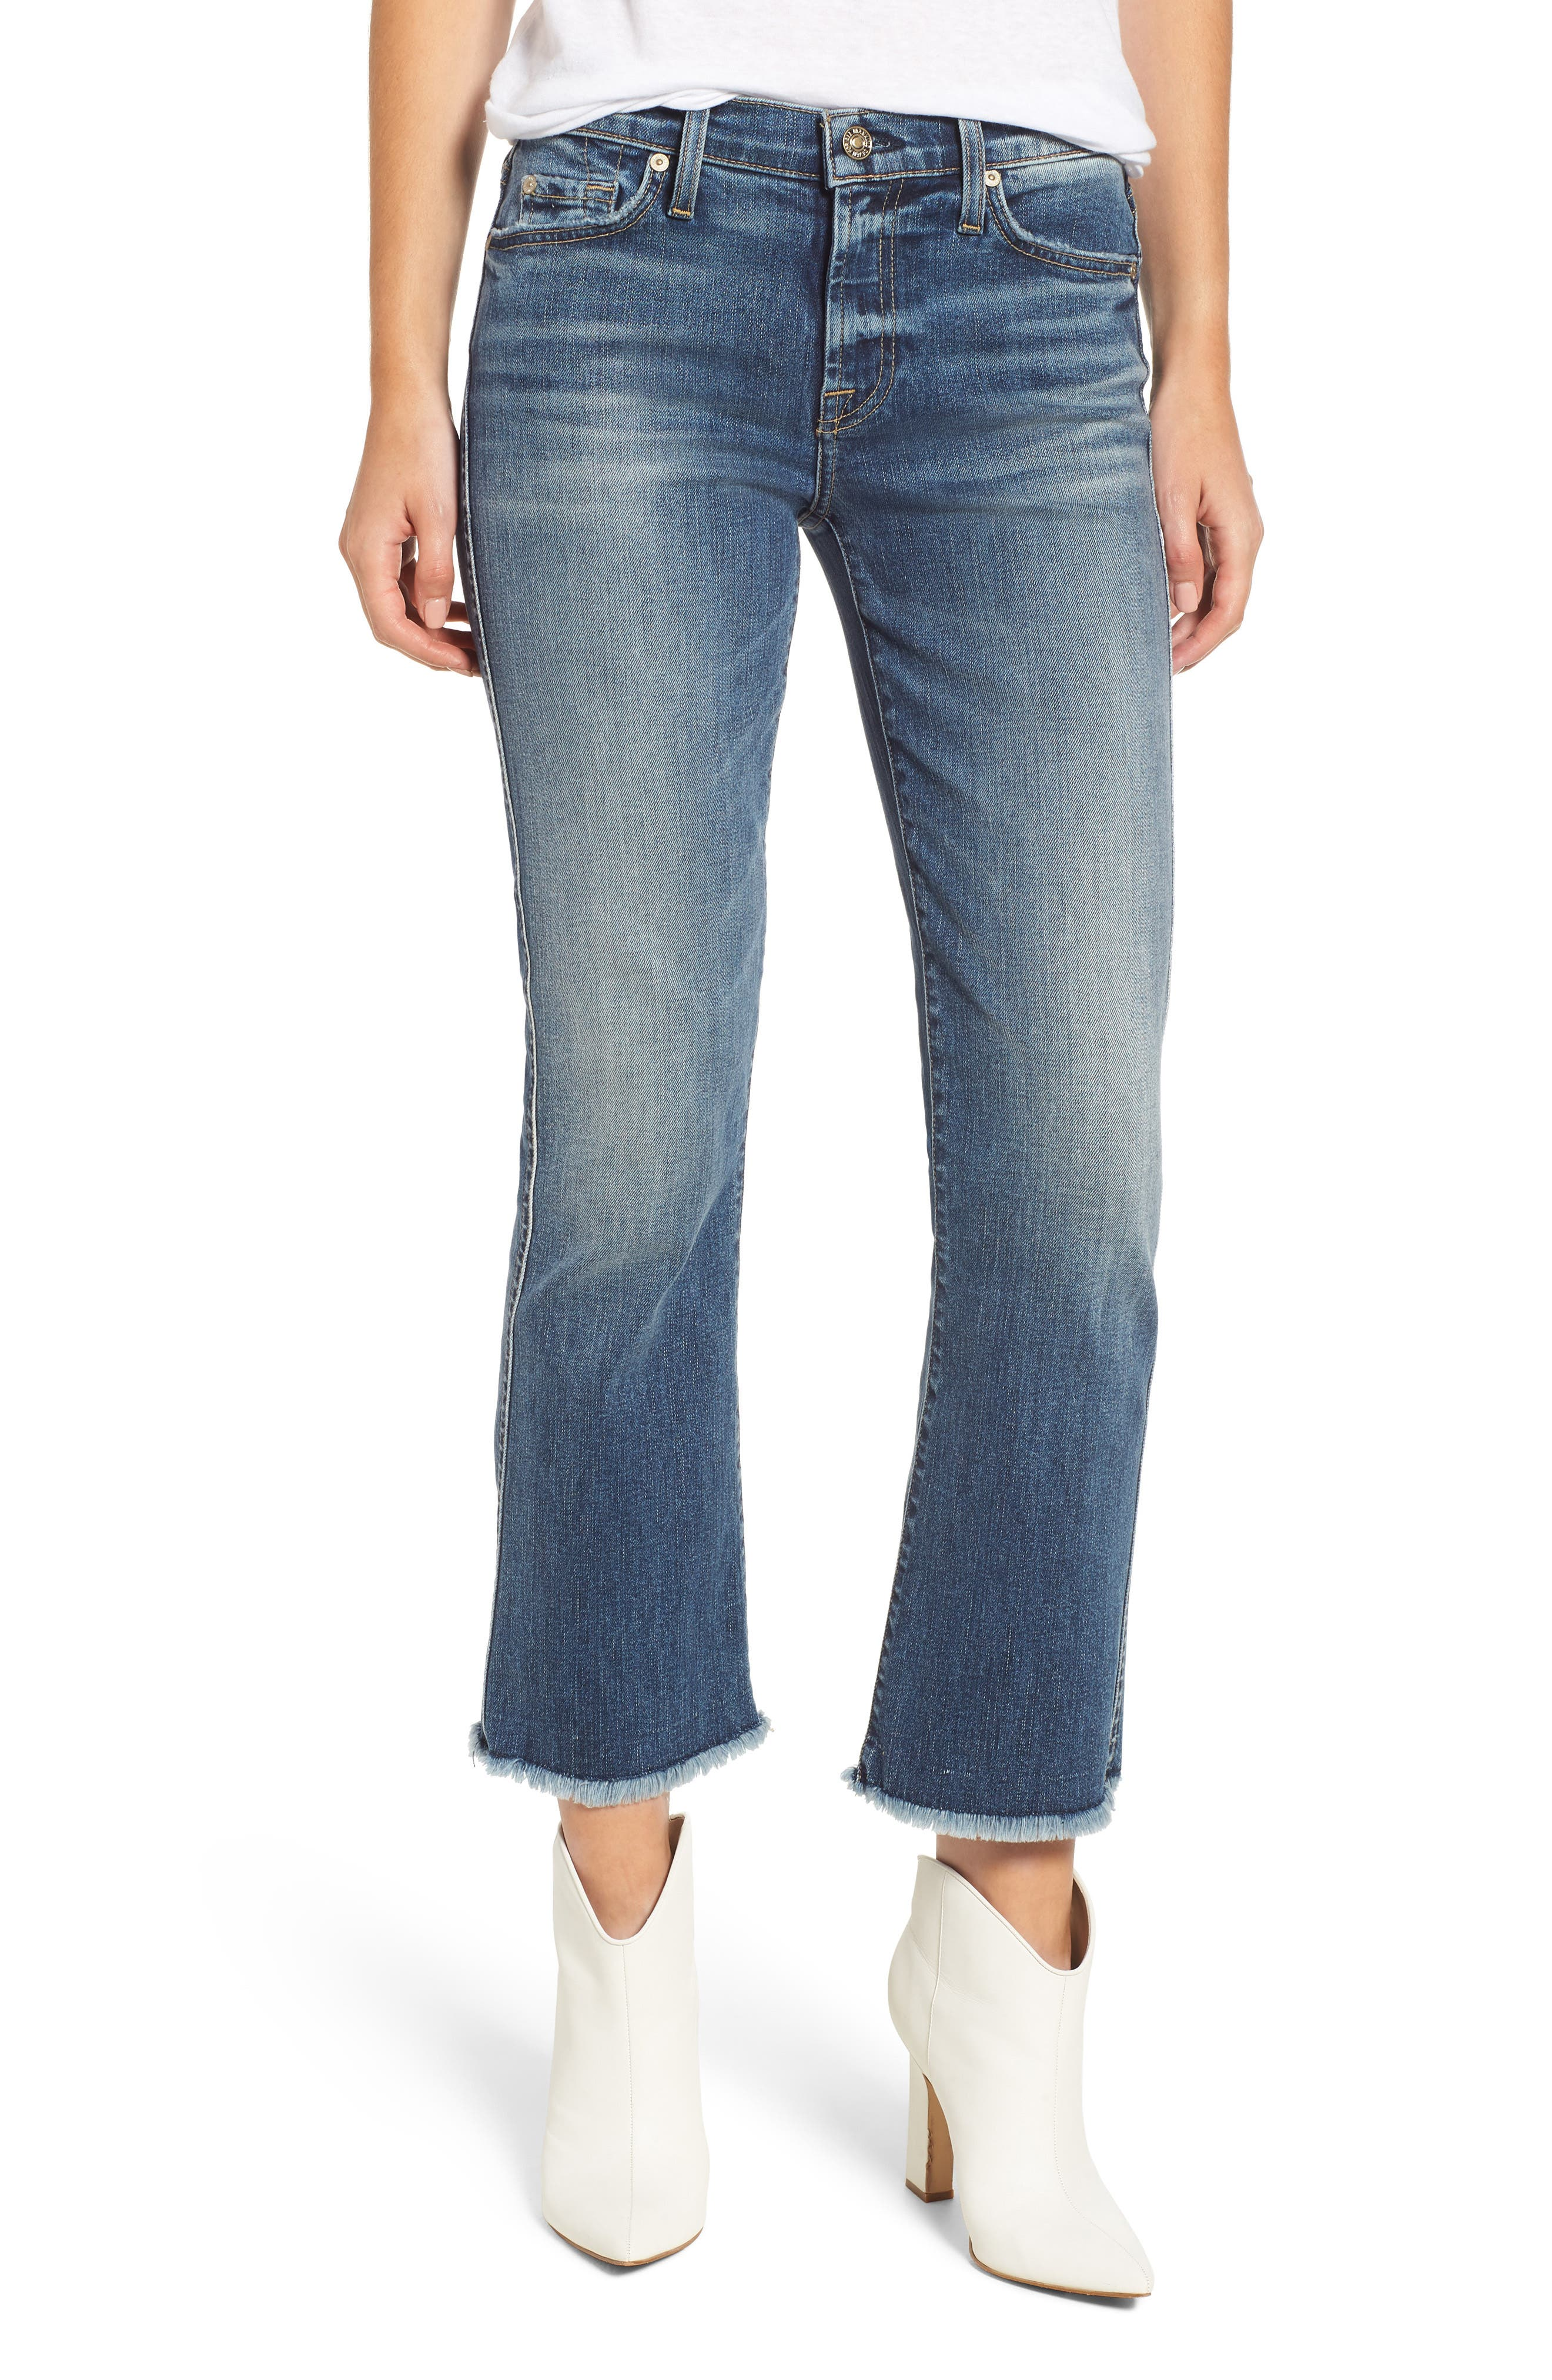 7 FOR ALL MANKIND<SUP>®</SUP>, High Waist Fray Crop Bootcut Jeans, Main thumbnail 1, color, 400